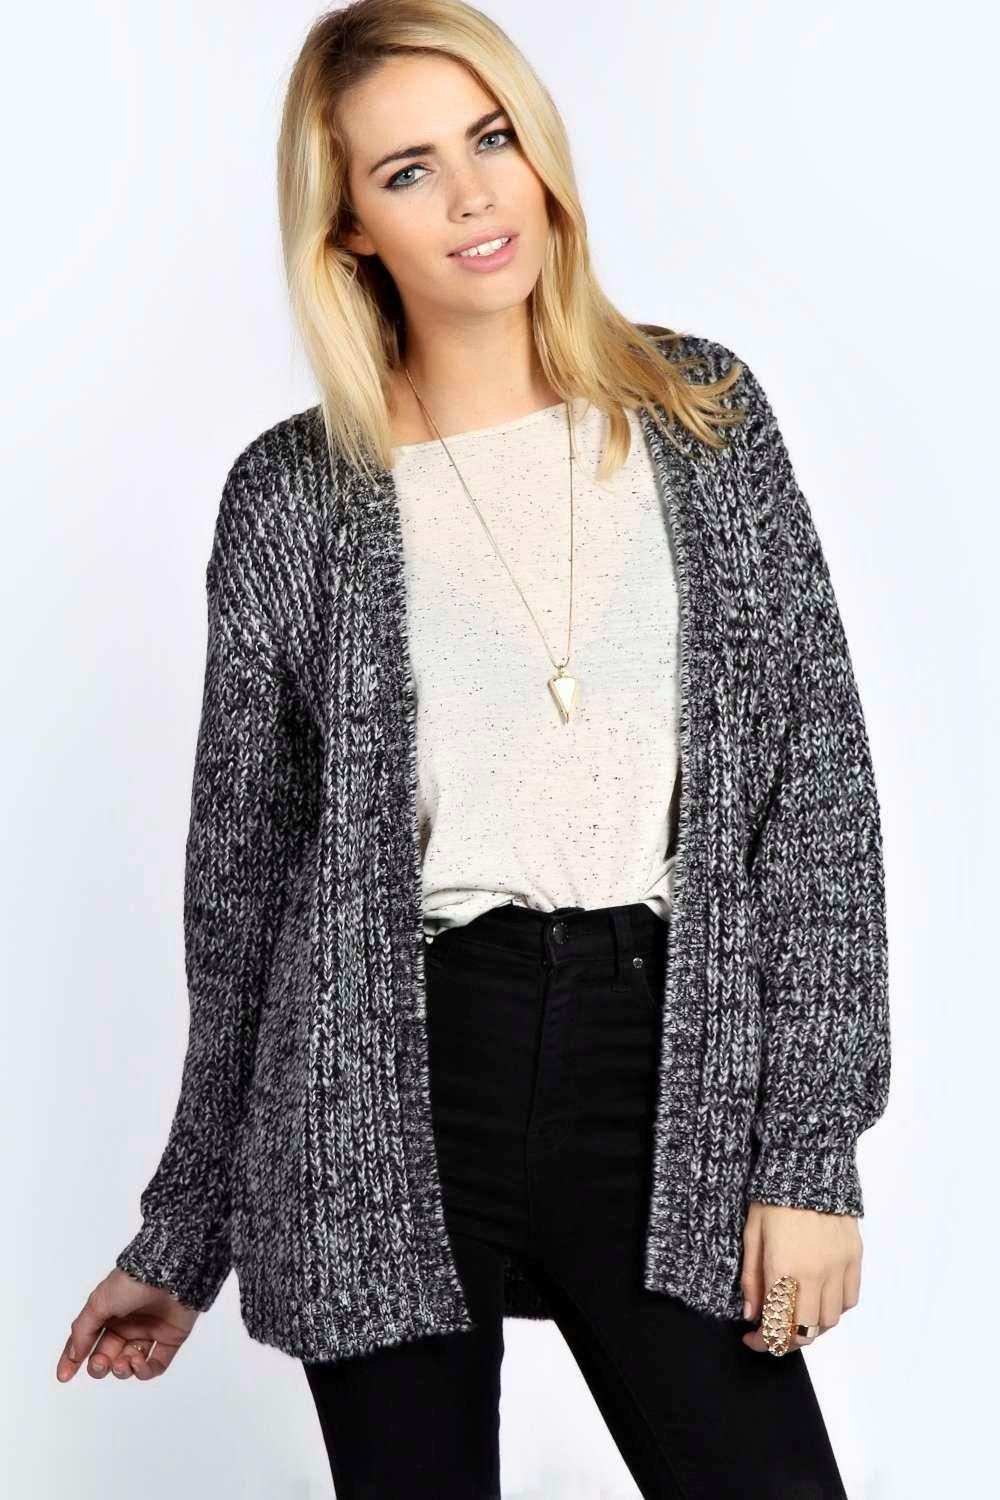 Isadora Edge To Edge Grungy Marl Knit Cardigan | Sweaters | Pinterest